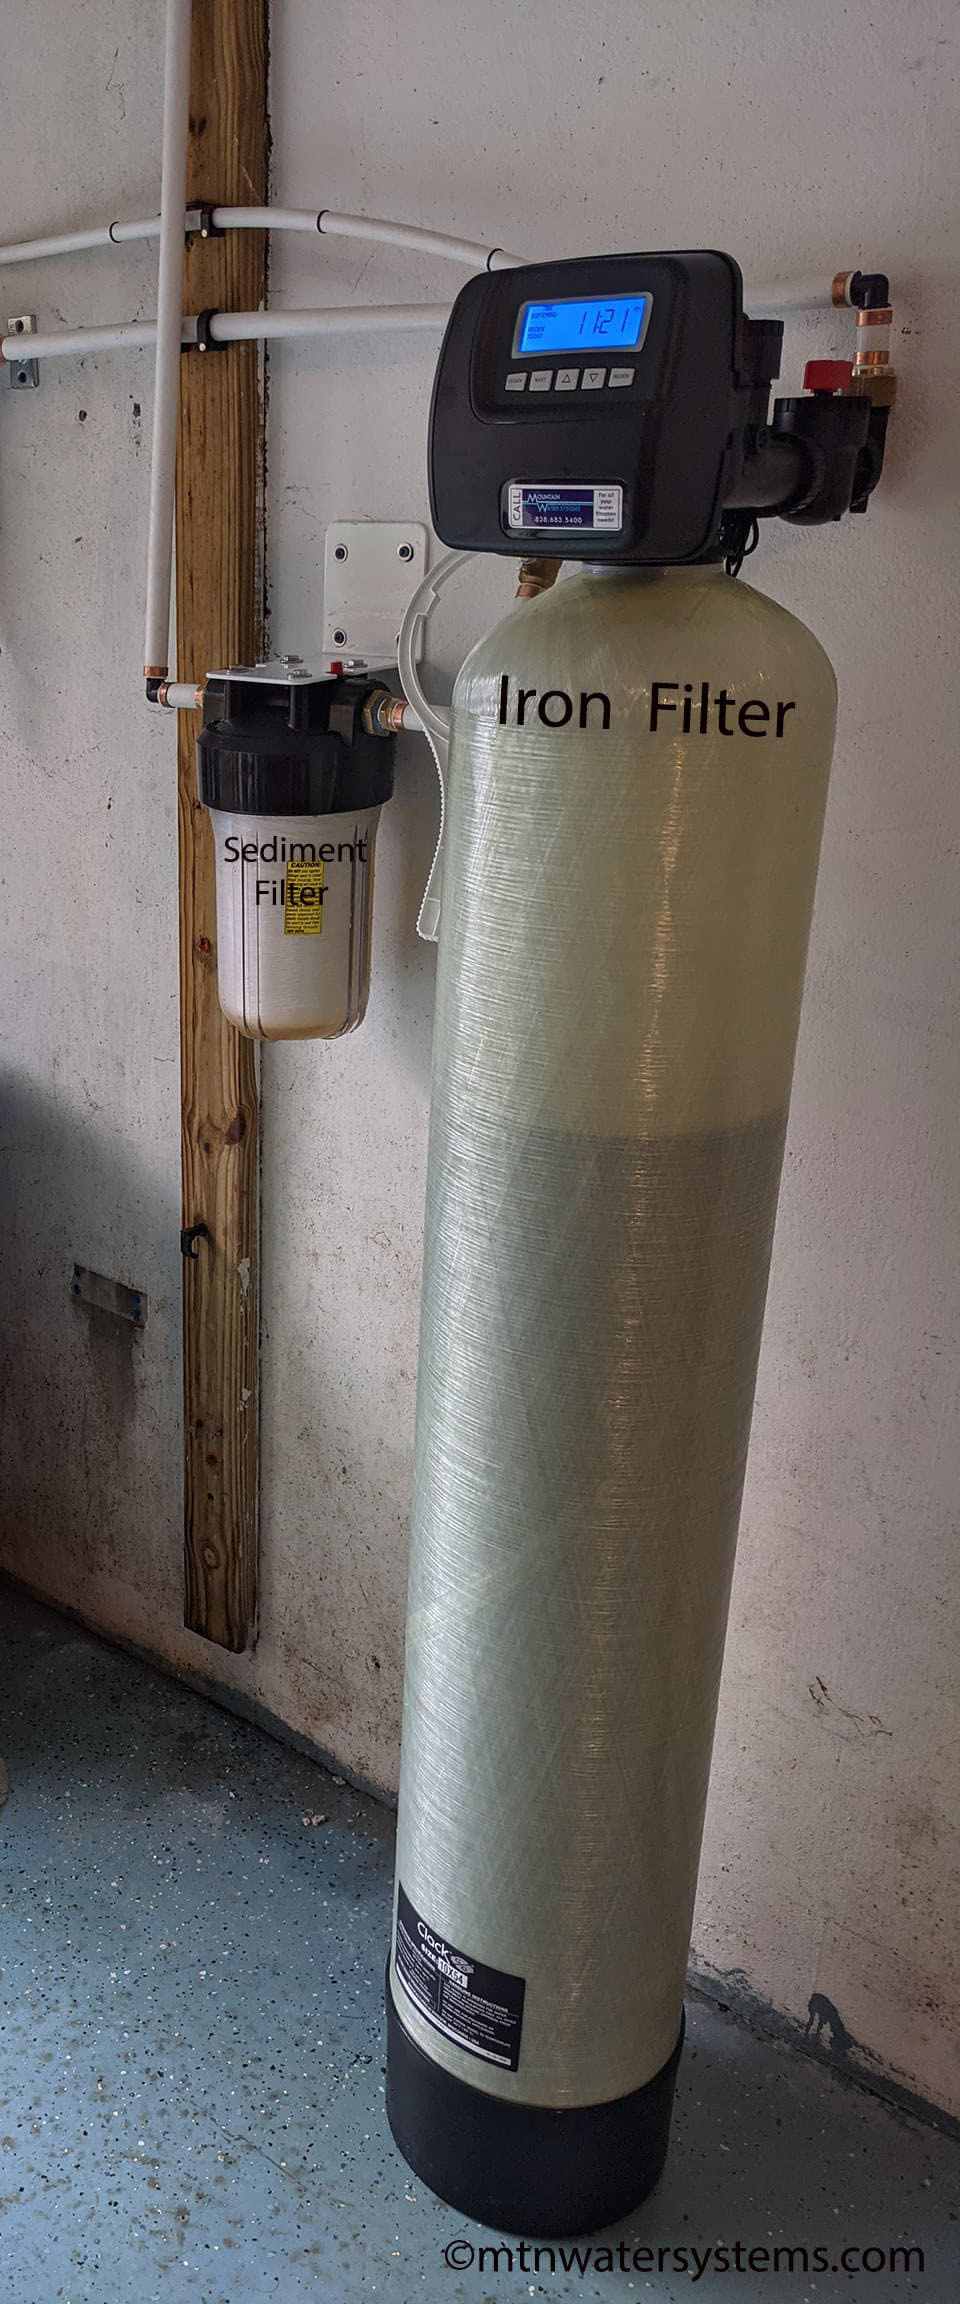 Iron Filter Stops the Rusty Staining Issue in Saluda